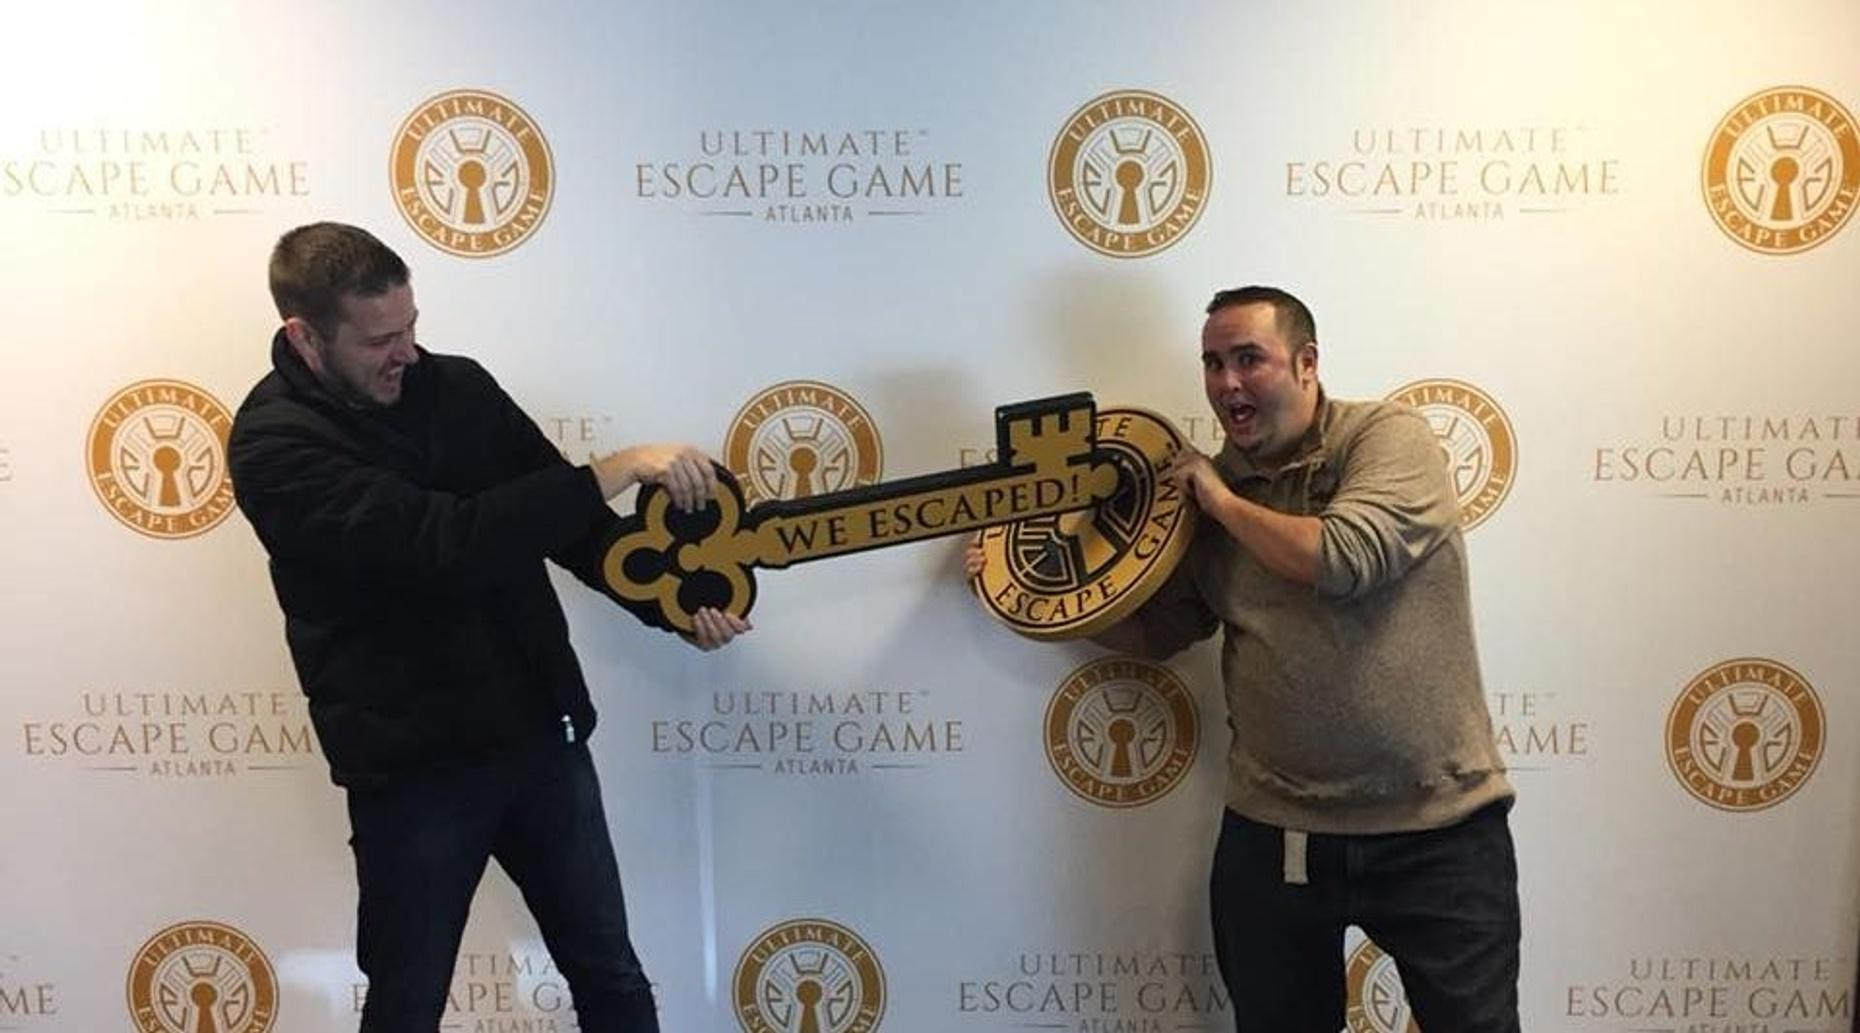 Submerged: Escape Room Game in Atlanta